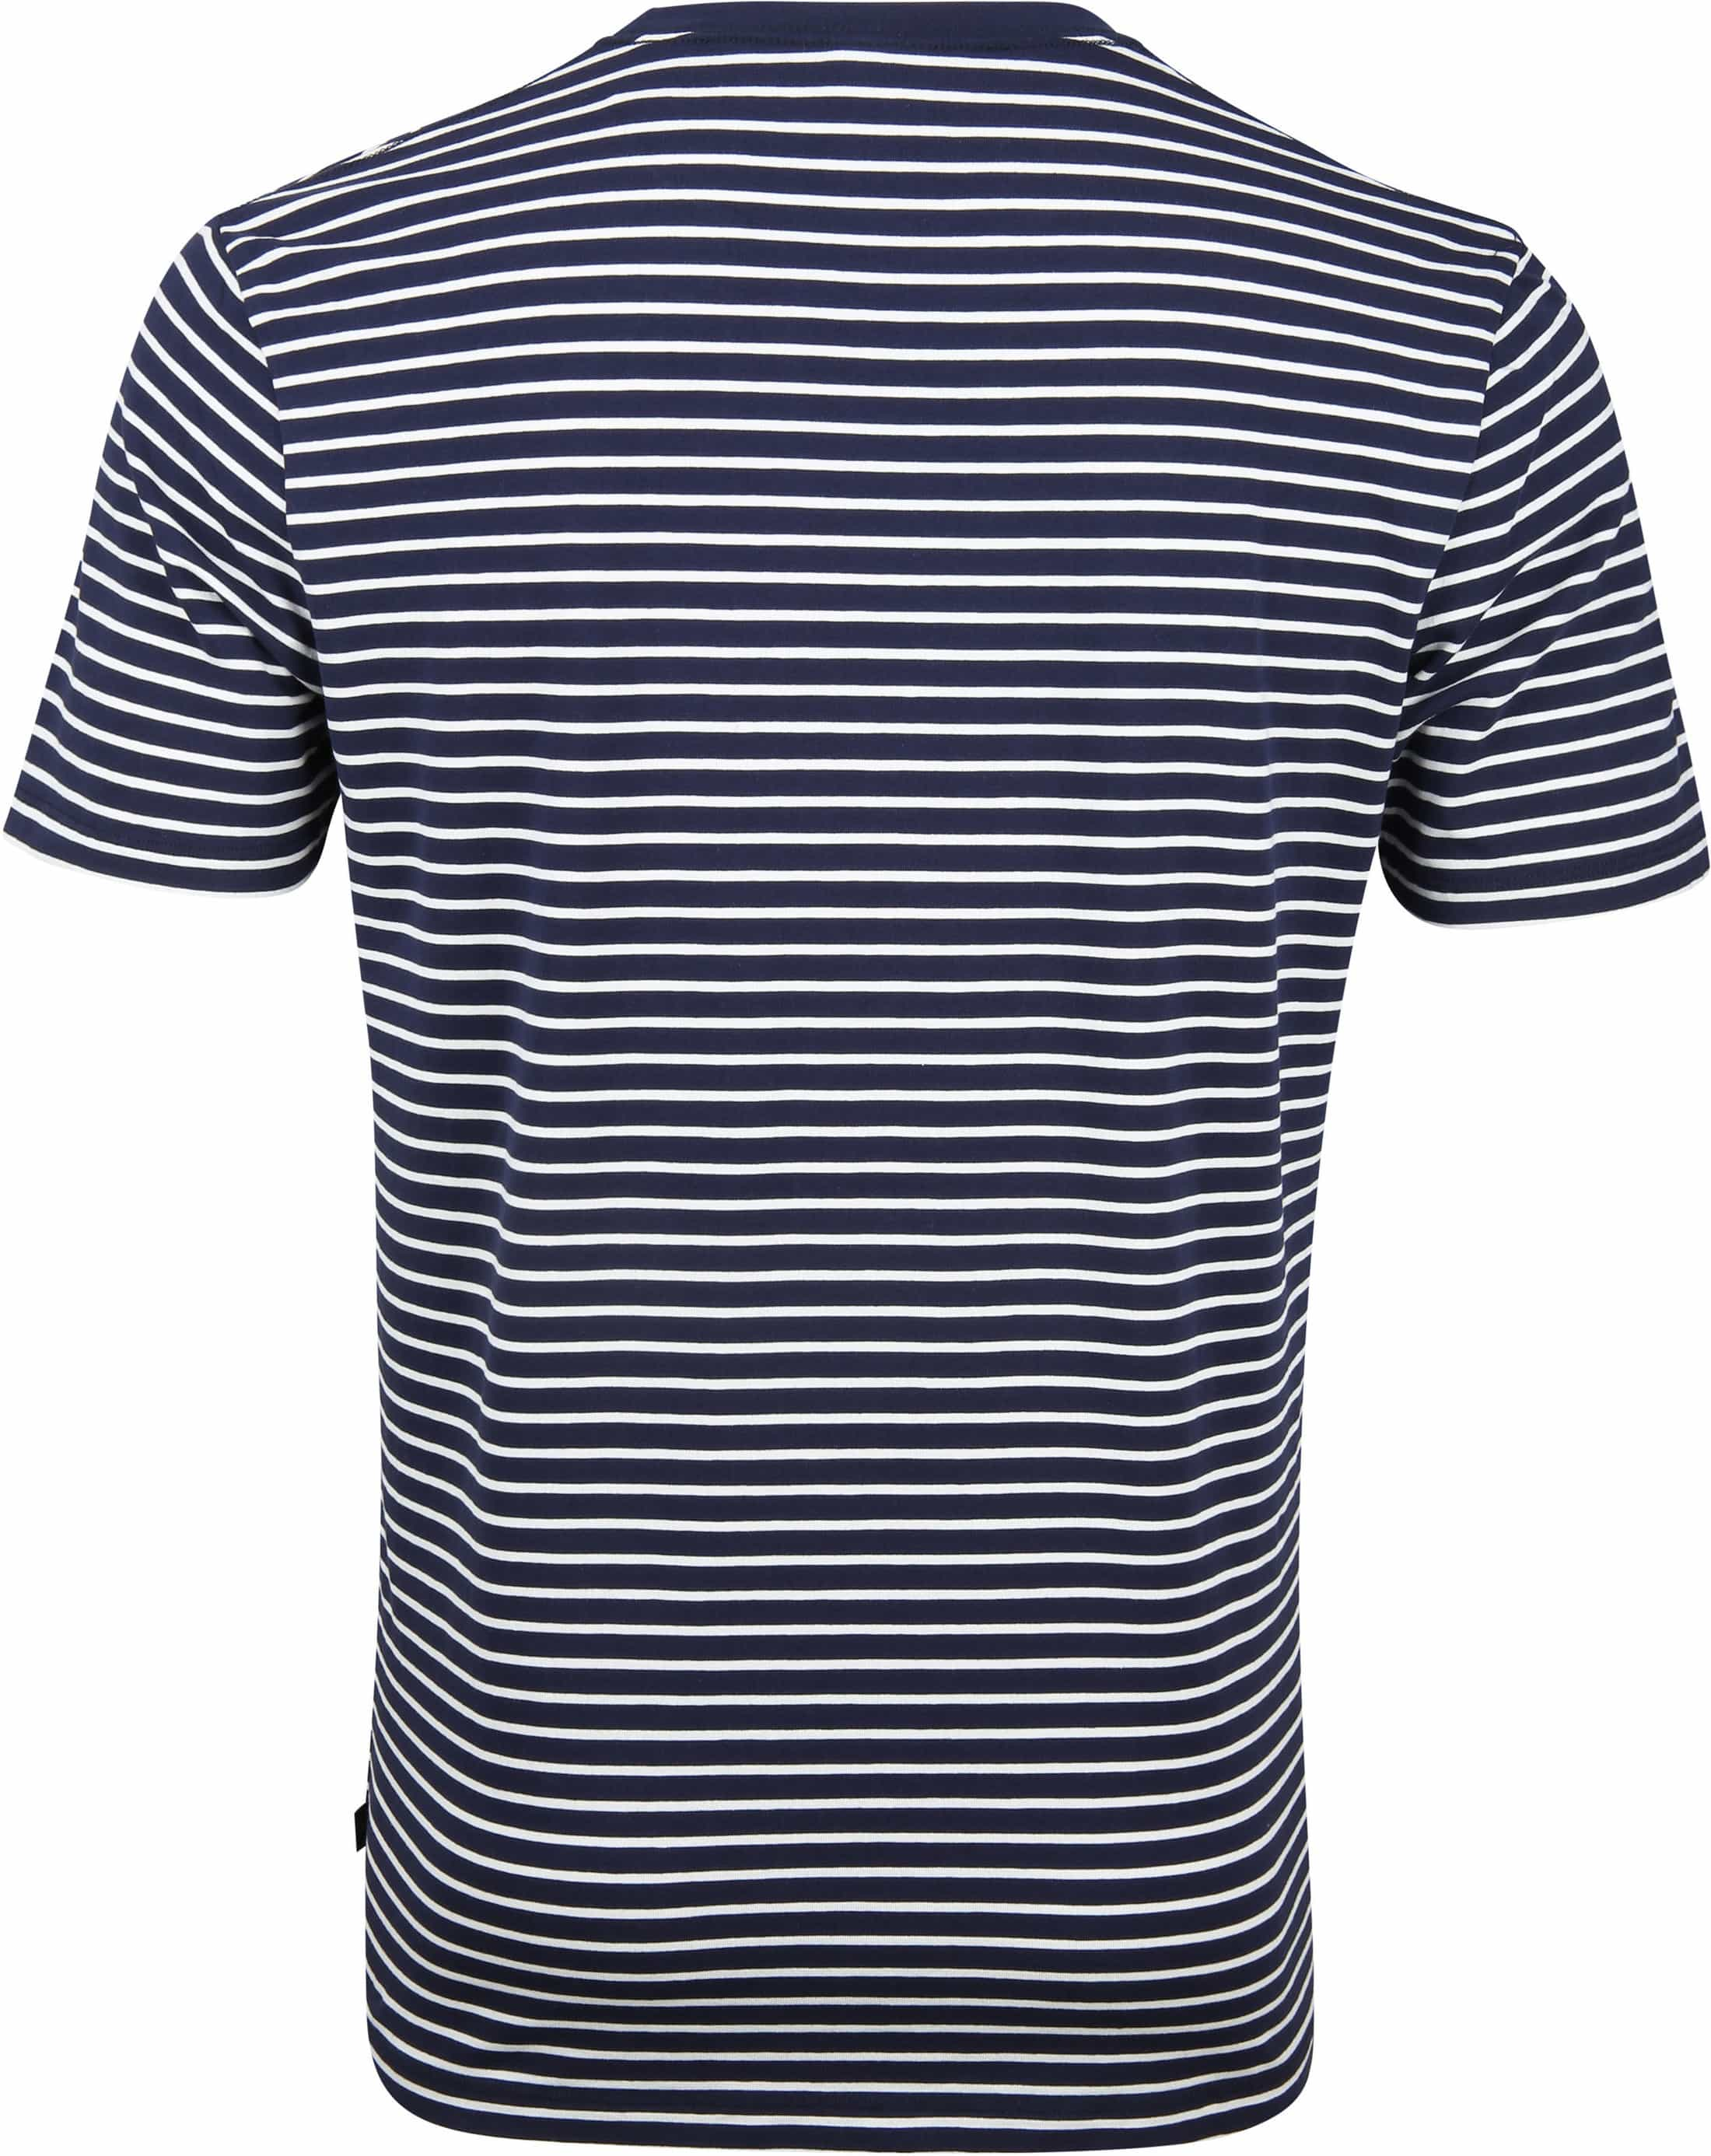 Scotch and Soda T-shirt Navy Strepen foto 3